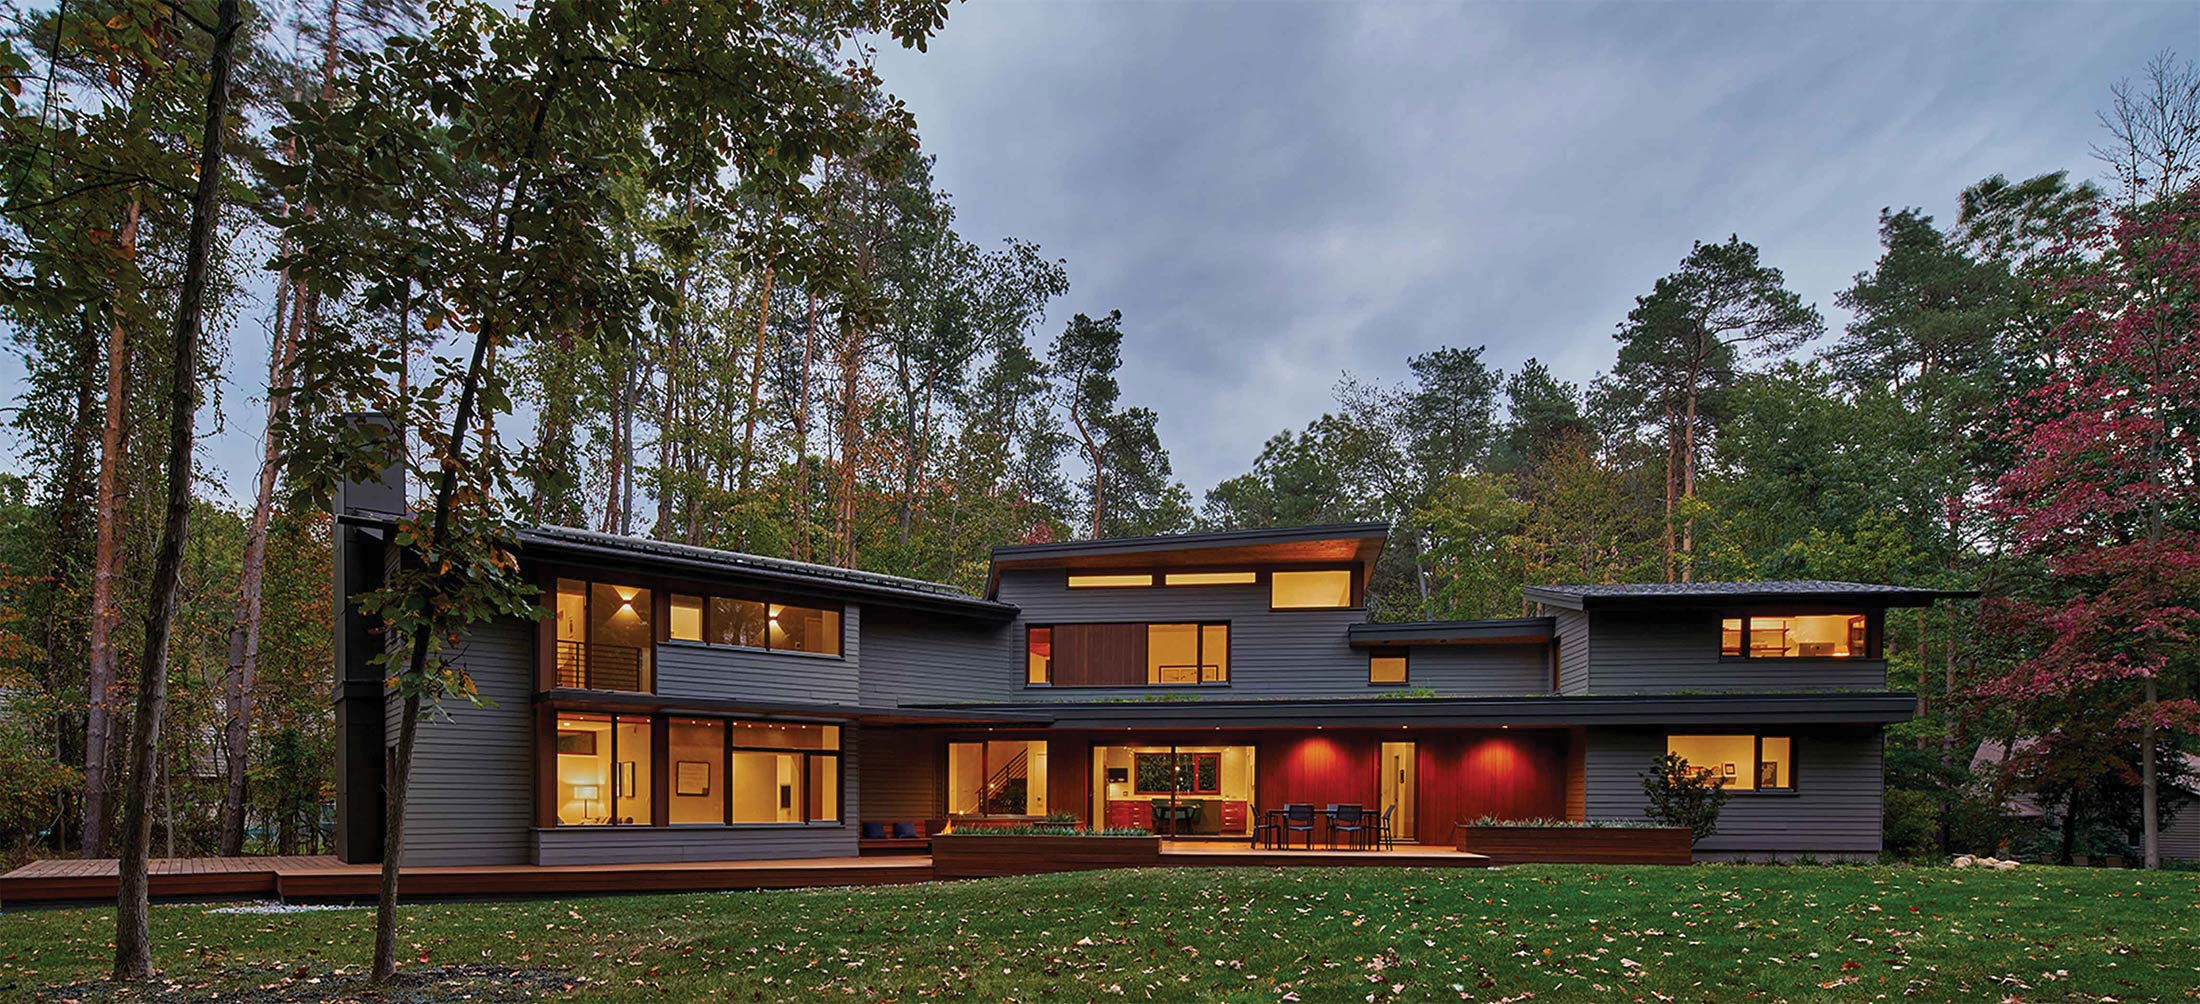 LEED Platinum Home Using Insulspan SIPs